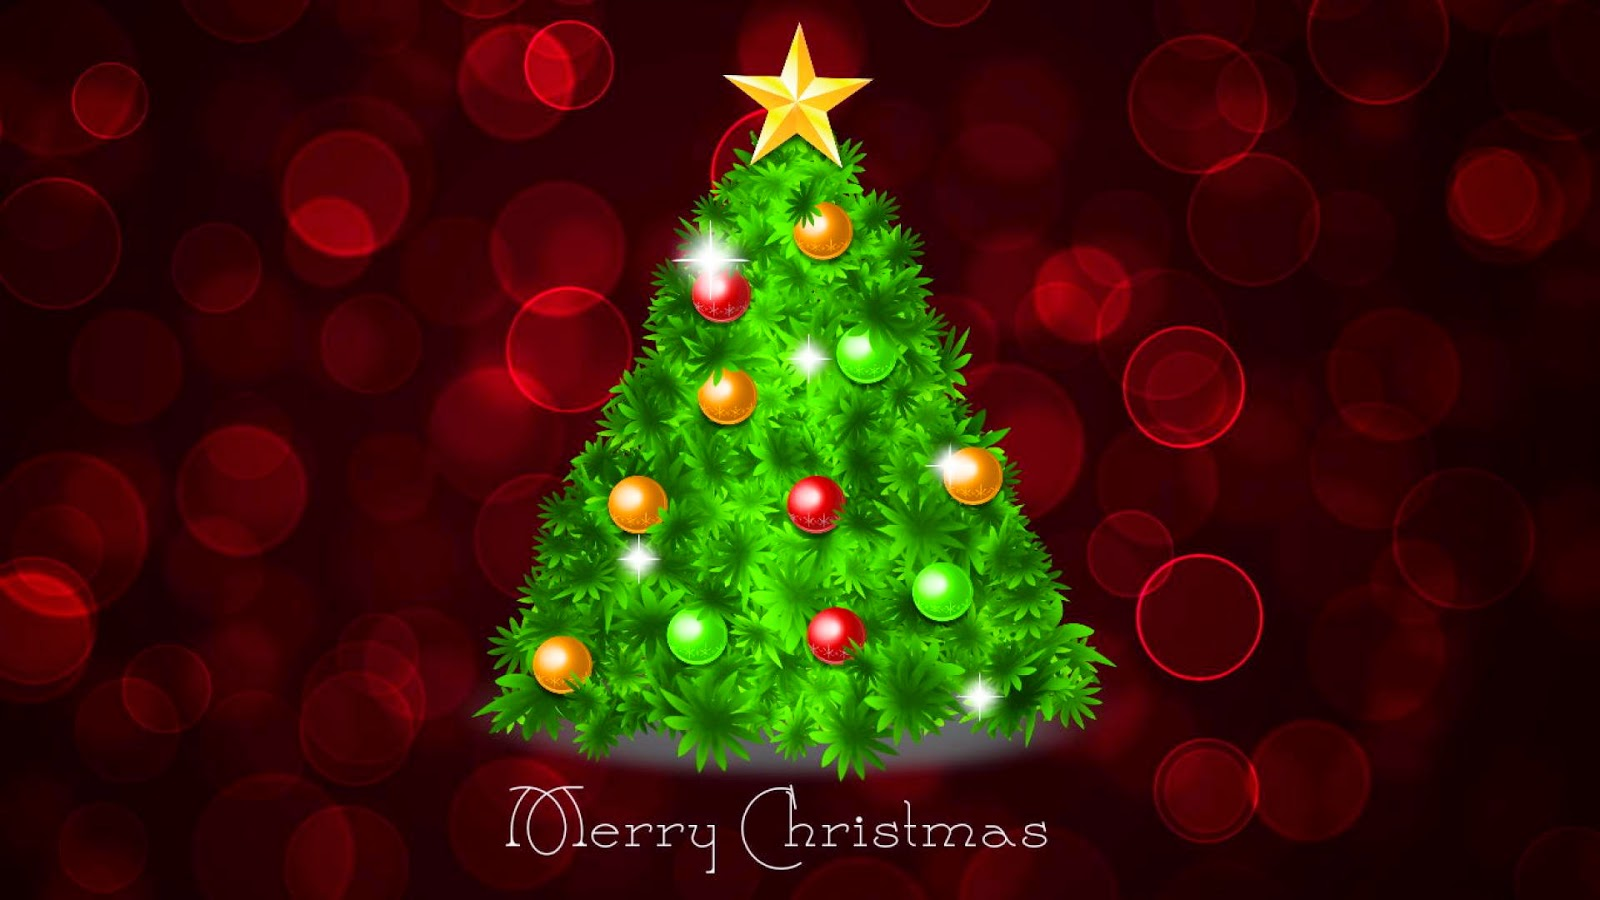 Merry-Christmas-tree-image-vector-graphics-design-HD-stock-pictures-free-download.jpg